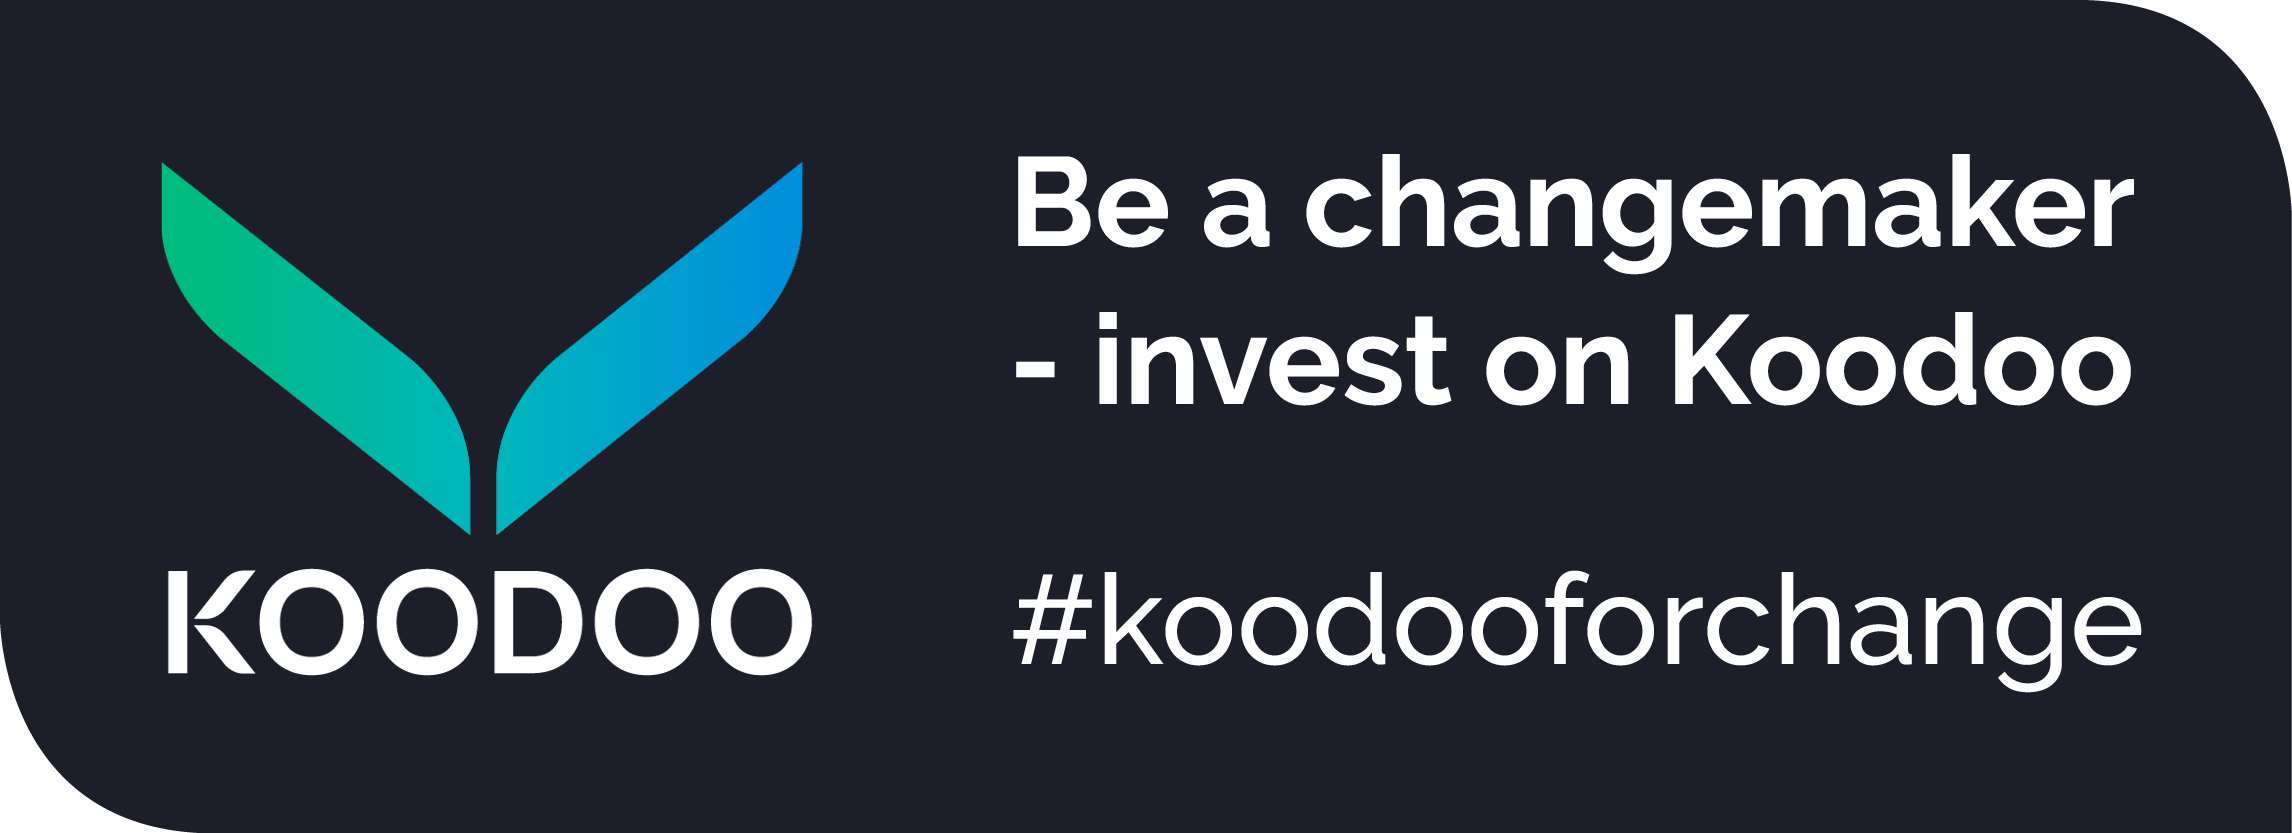 Be a changemaker—invest on Koodoo